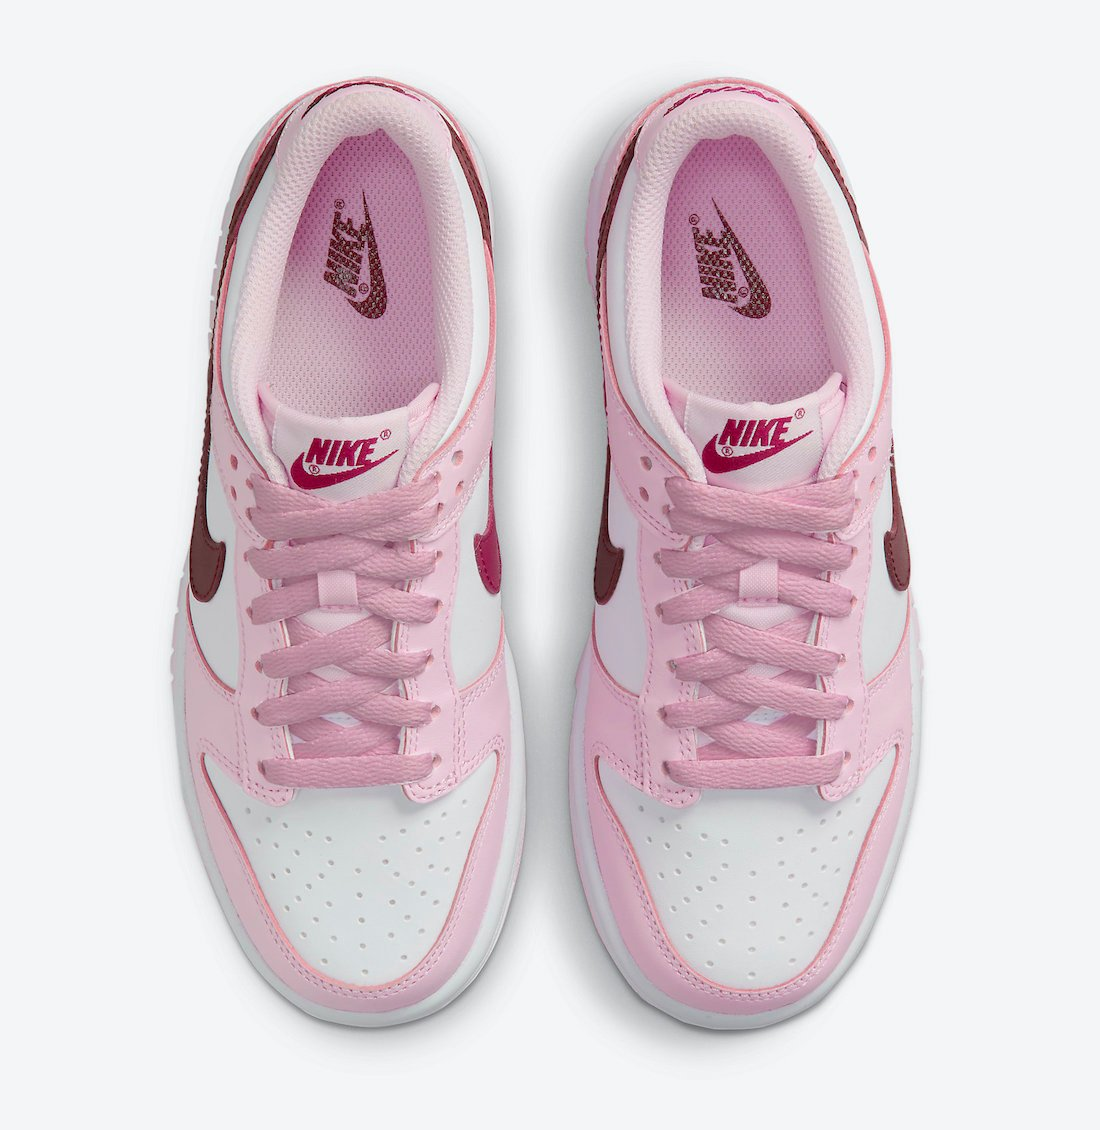 Nike Dunk Low GS White Pink Red CW1590-601 Release Date Info